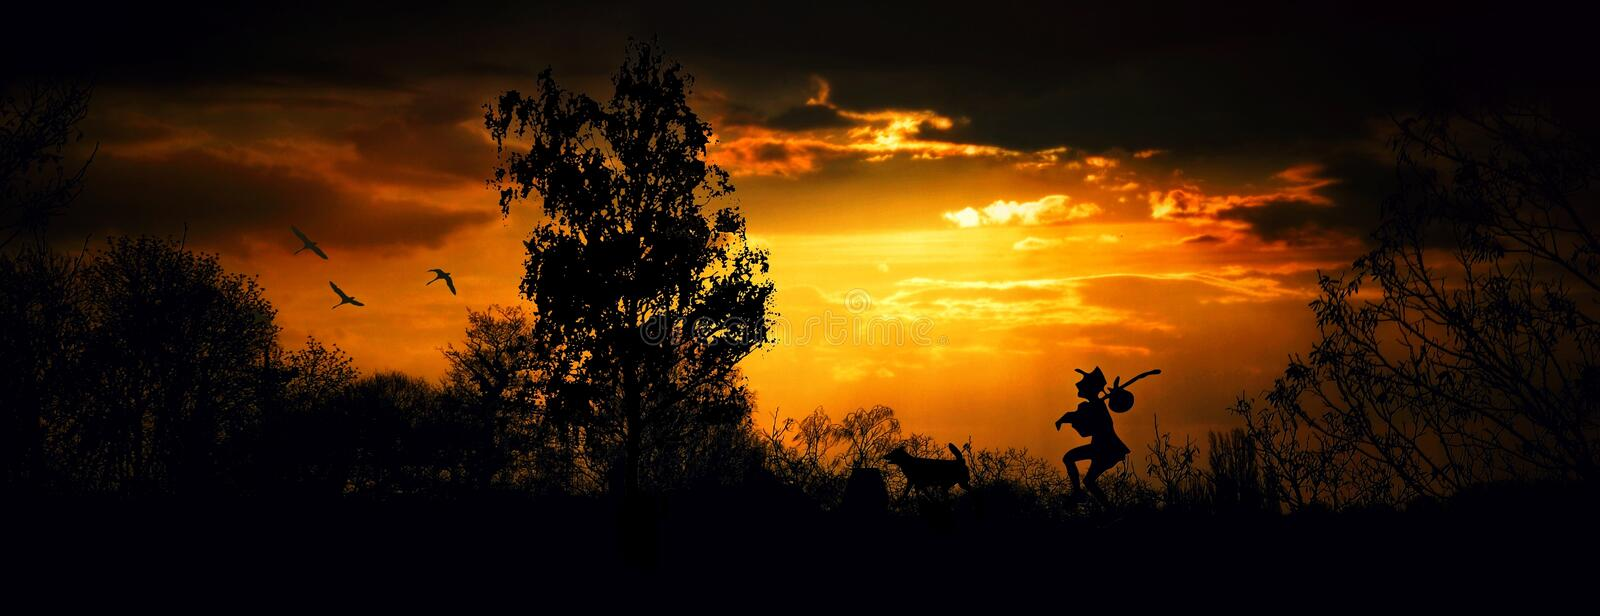 Sky, Nature, Sunset, Sun royalty free stock images